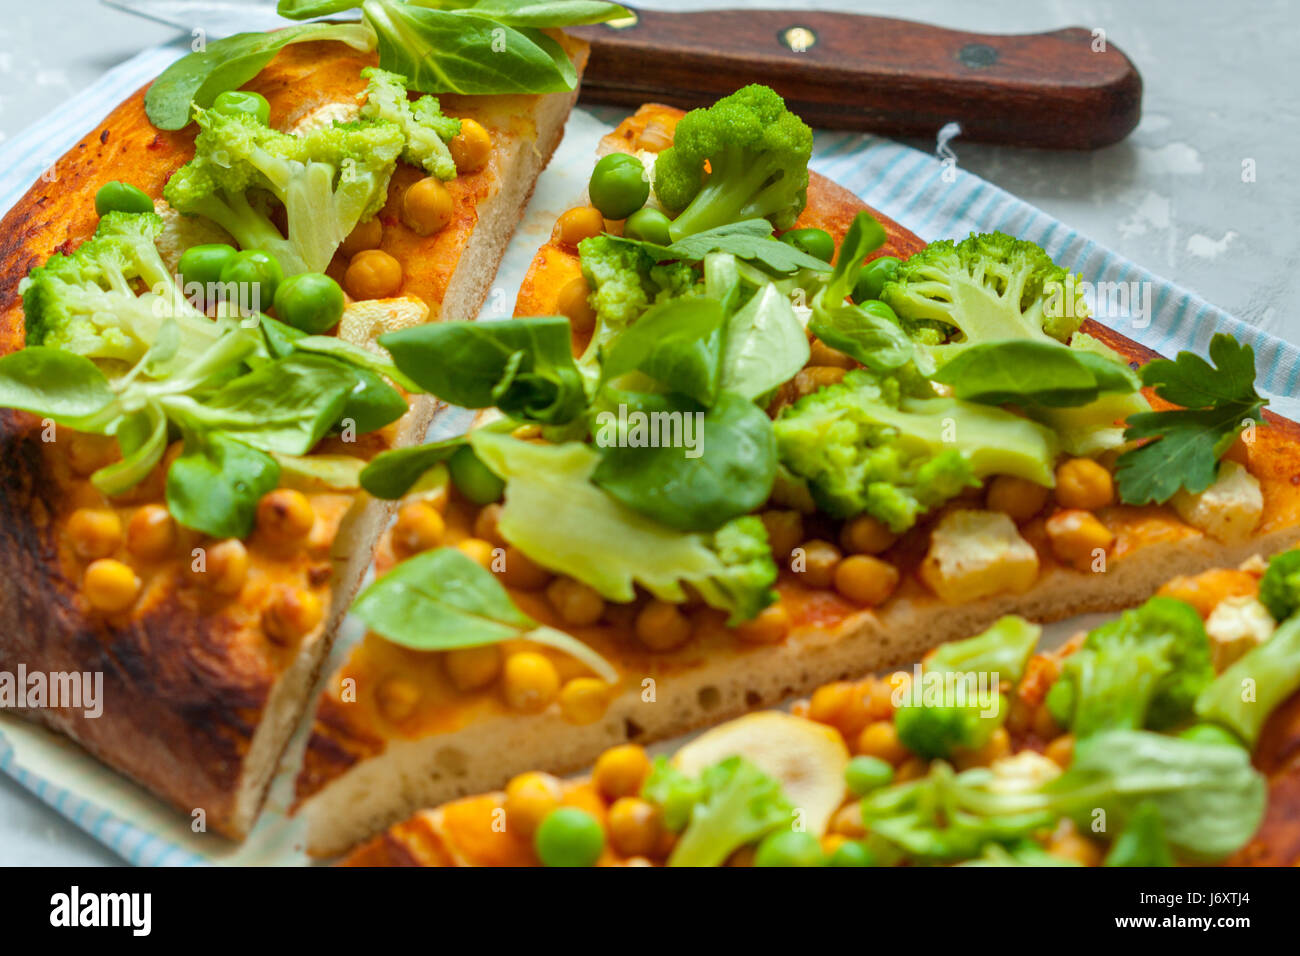 Vegan pizza with chickpeas and broccoli. Love for a healthy vegan food concept - Stock Image